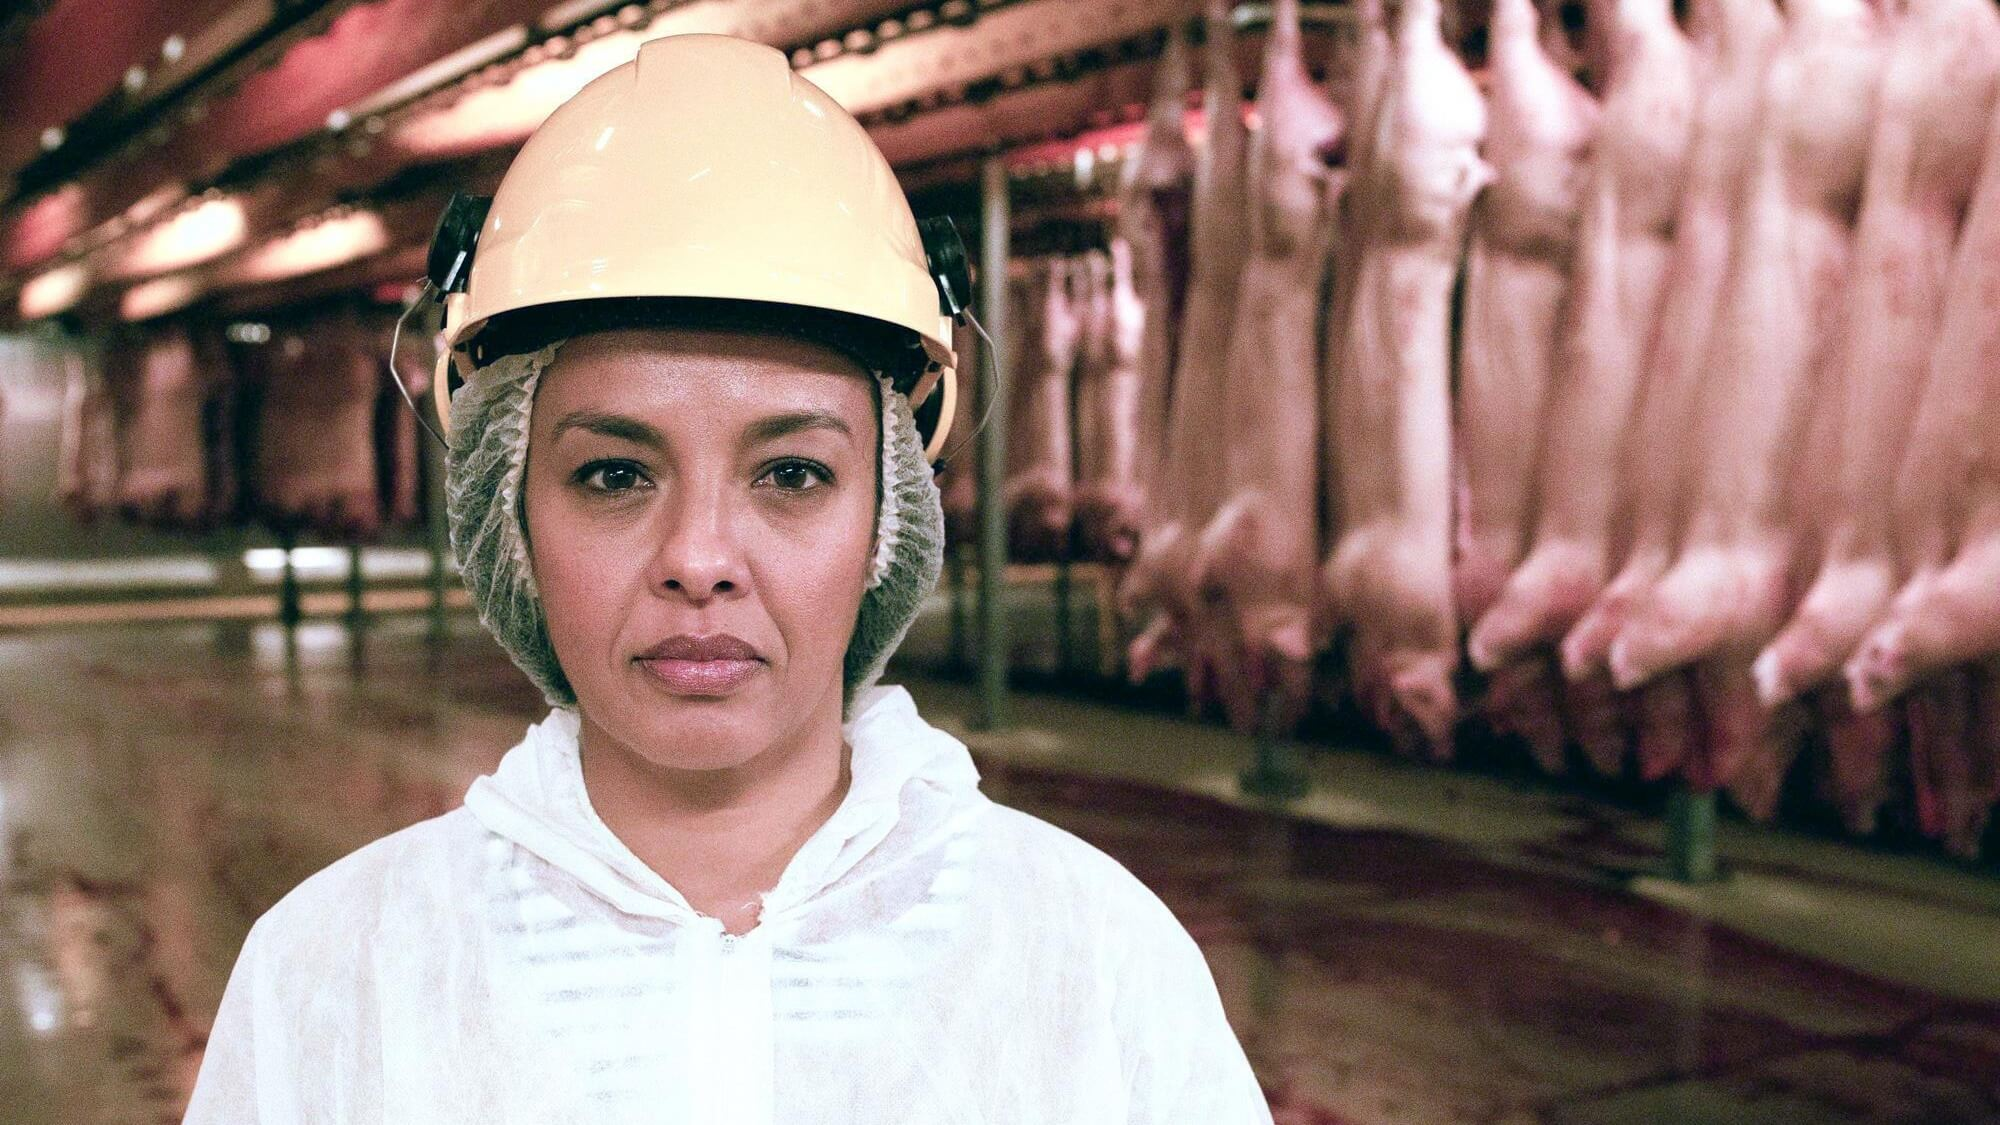 Meat: A Threat to Our Planet Airs on BBC